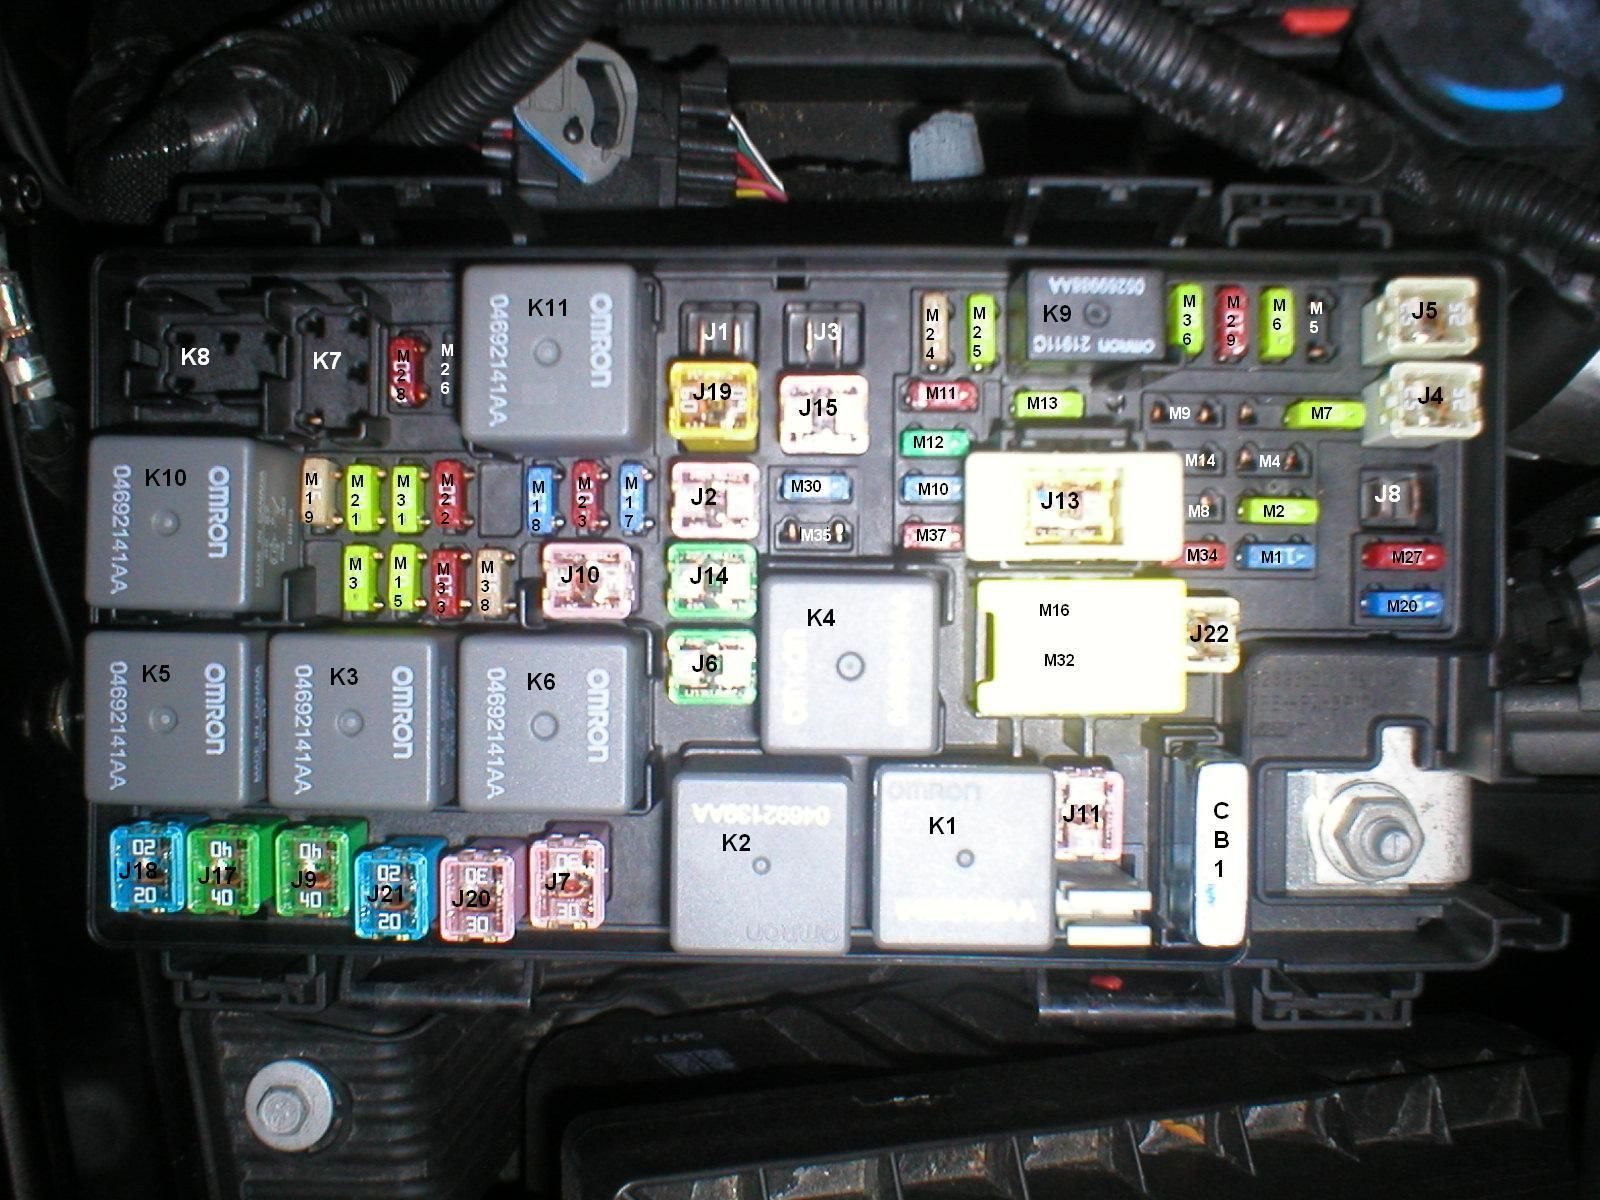 e14168e4d068a342b0792c6b4c75a229 jeep jk fuse box map layout diagram jeepforum com just empty 2004 Jeep Fuse Box Diagram at soozxer.org